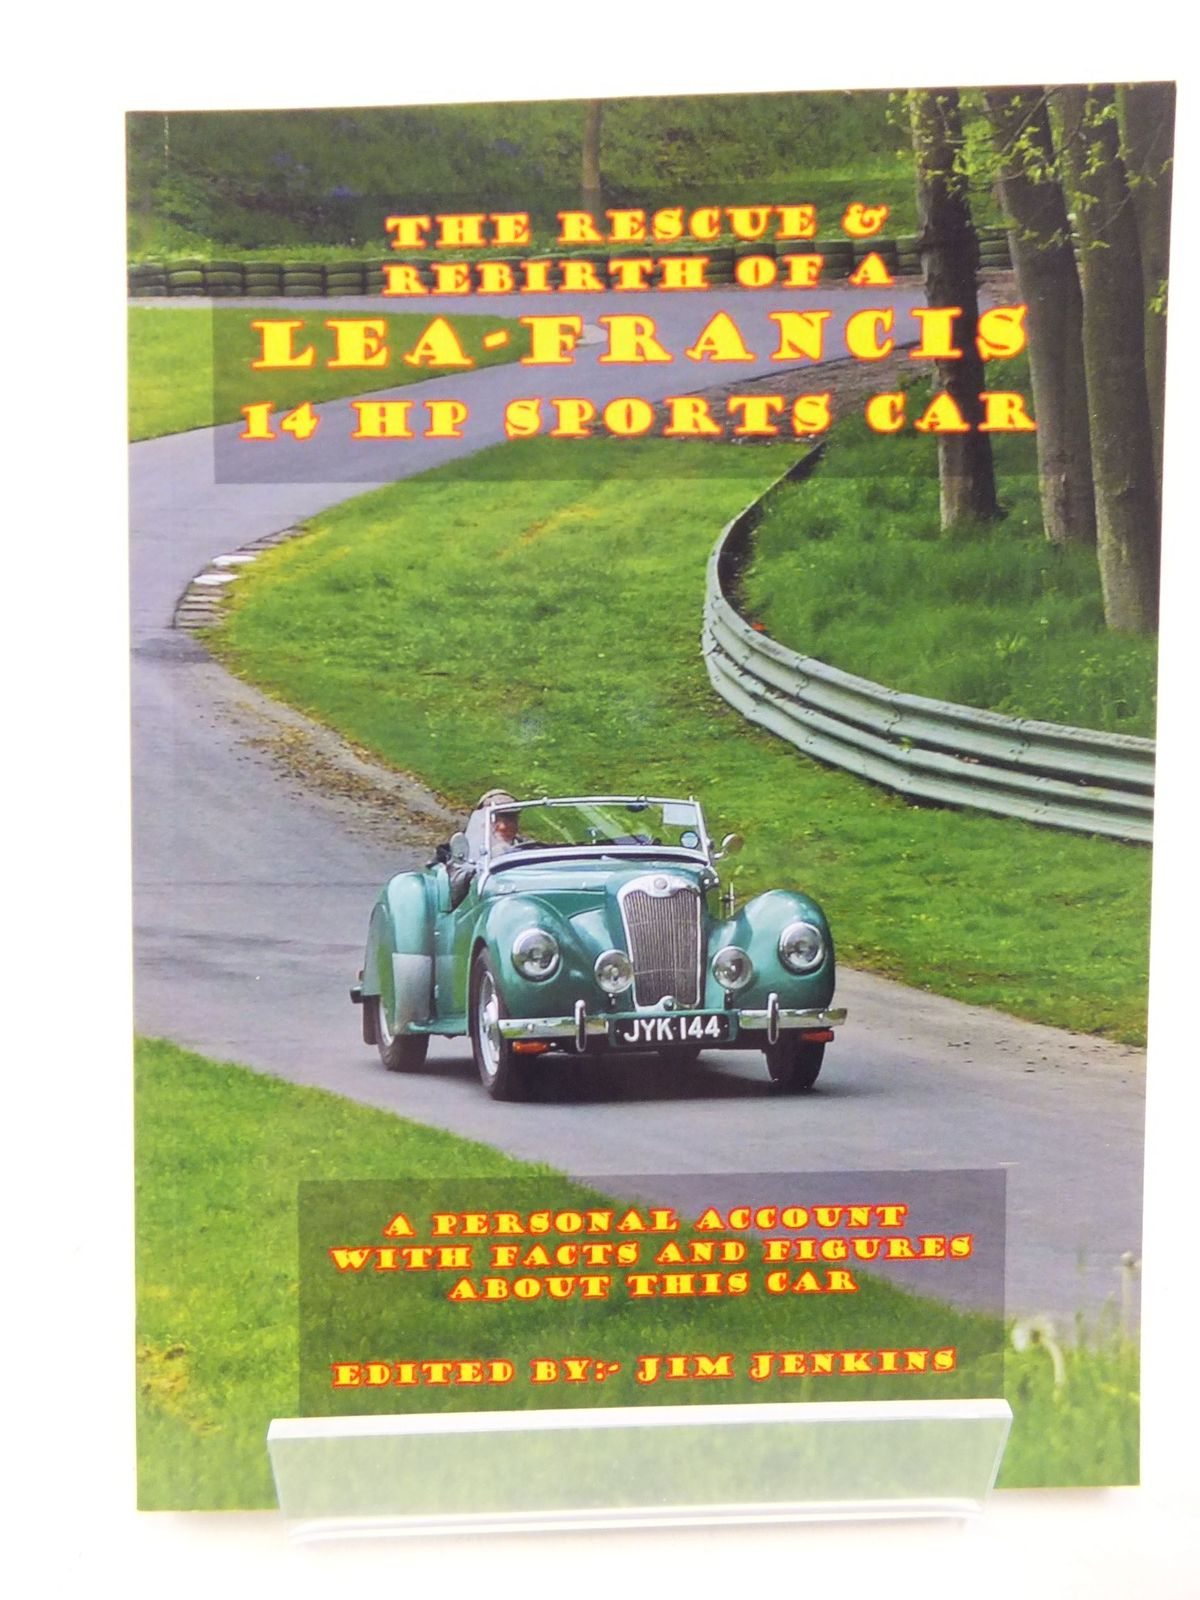 Photo of THE RESCUE & REBIRTH OF A LEA-FRANCIS 14 HP SPORTS CAR written by Jenkins, Jim published by Jim Jenkins (STOCK CODE: 2113914)  for sale by Stella & Rose's Books